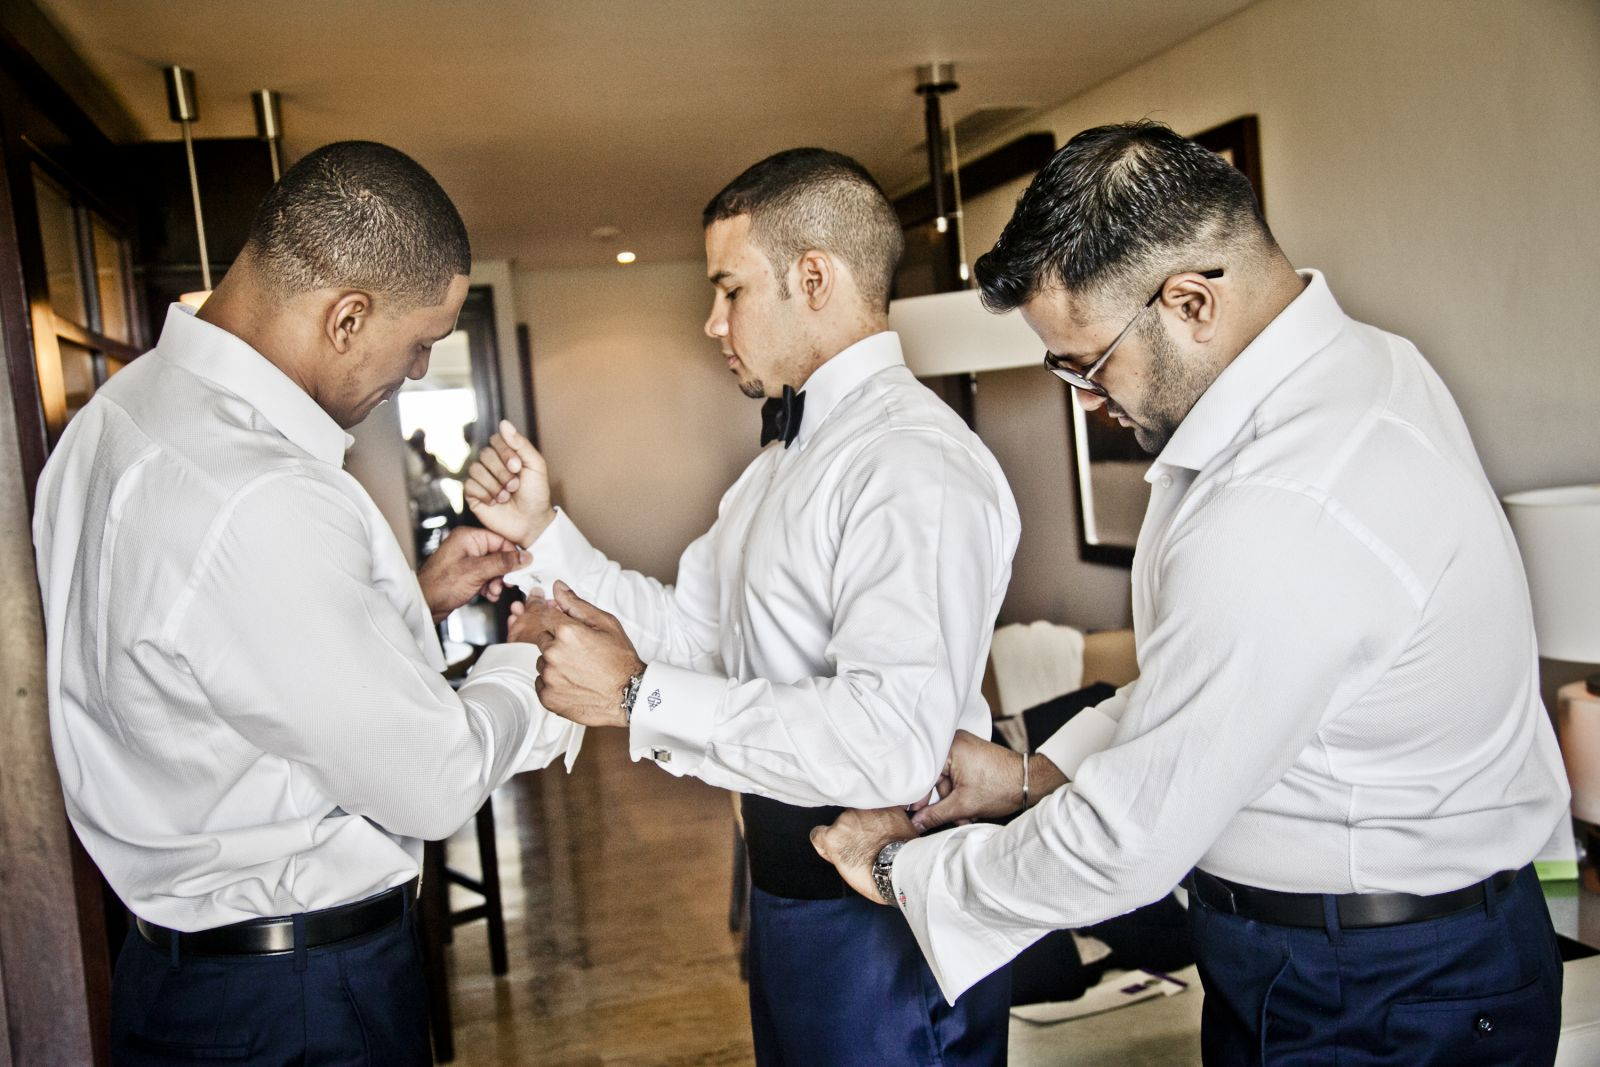 His groomsmen getting him ready